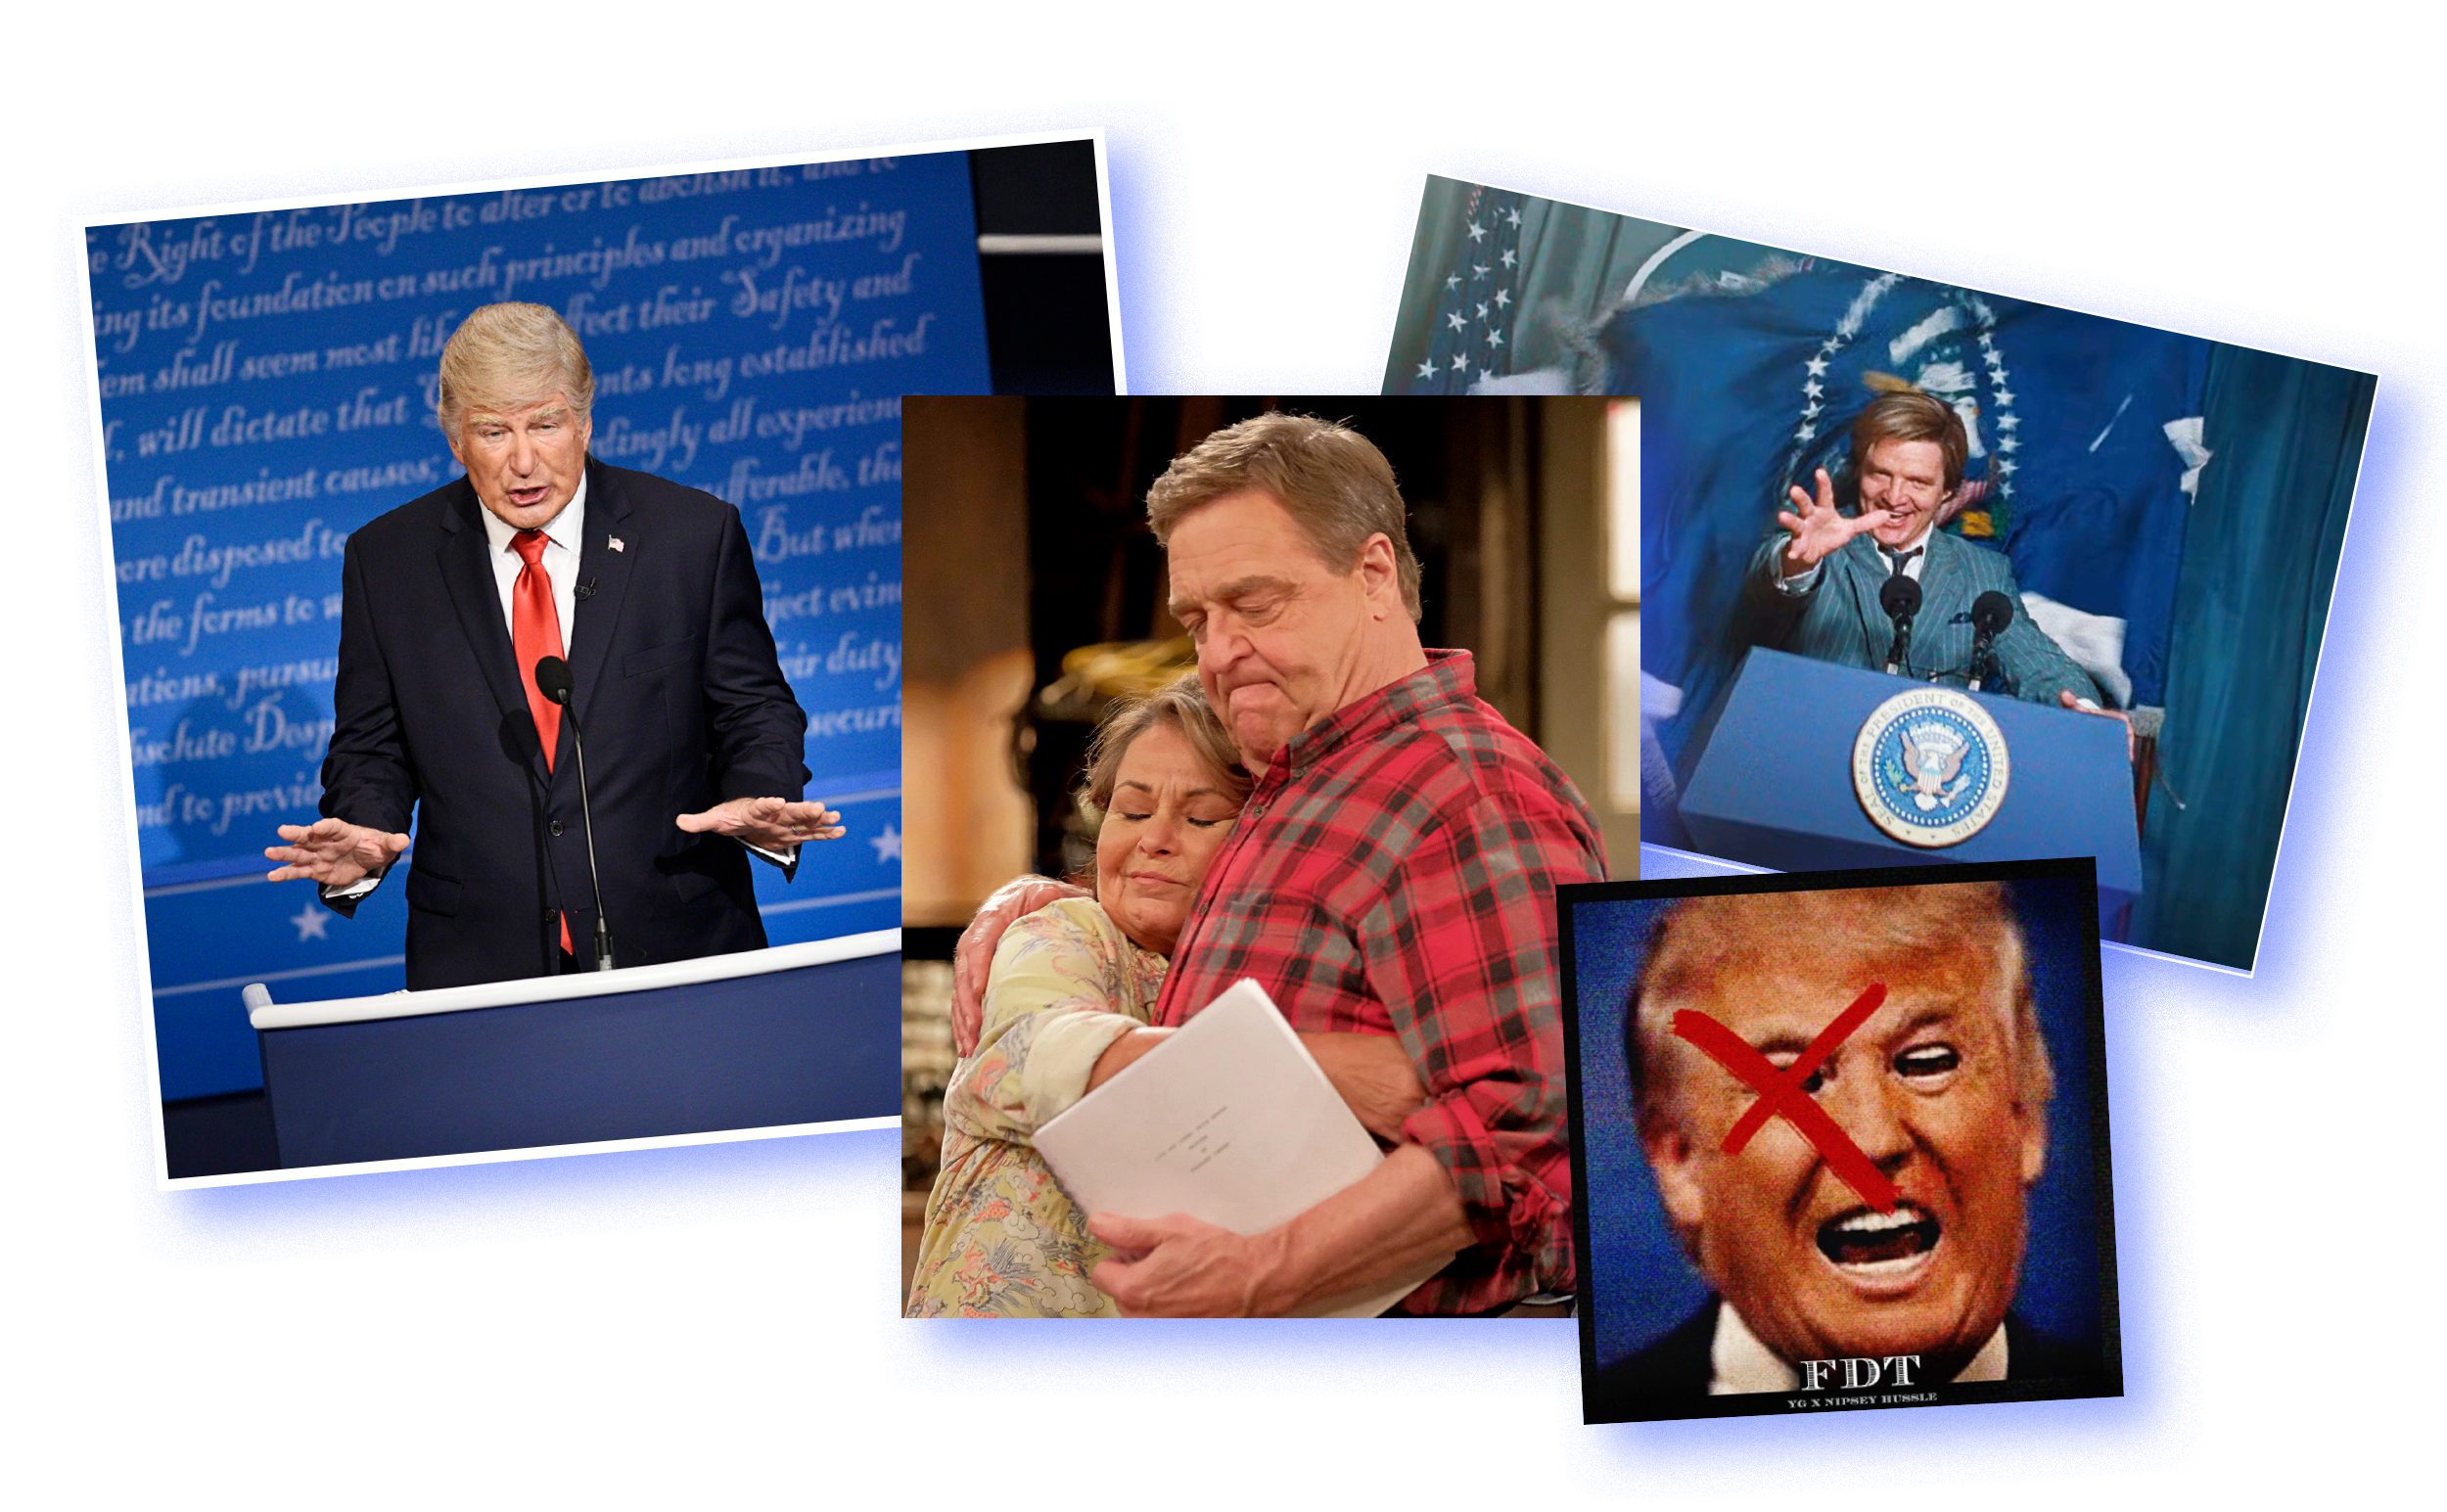 Alec Baldwin on 'Saturday Night Live'; Roseanne Barr and John Goodman on 'Roseanne'; Pedro Pascal in 'Wonder Woman 1984'; artwork for the song 'FDT' by YG and Nipsey Hussle